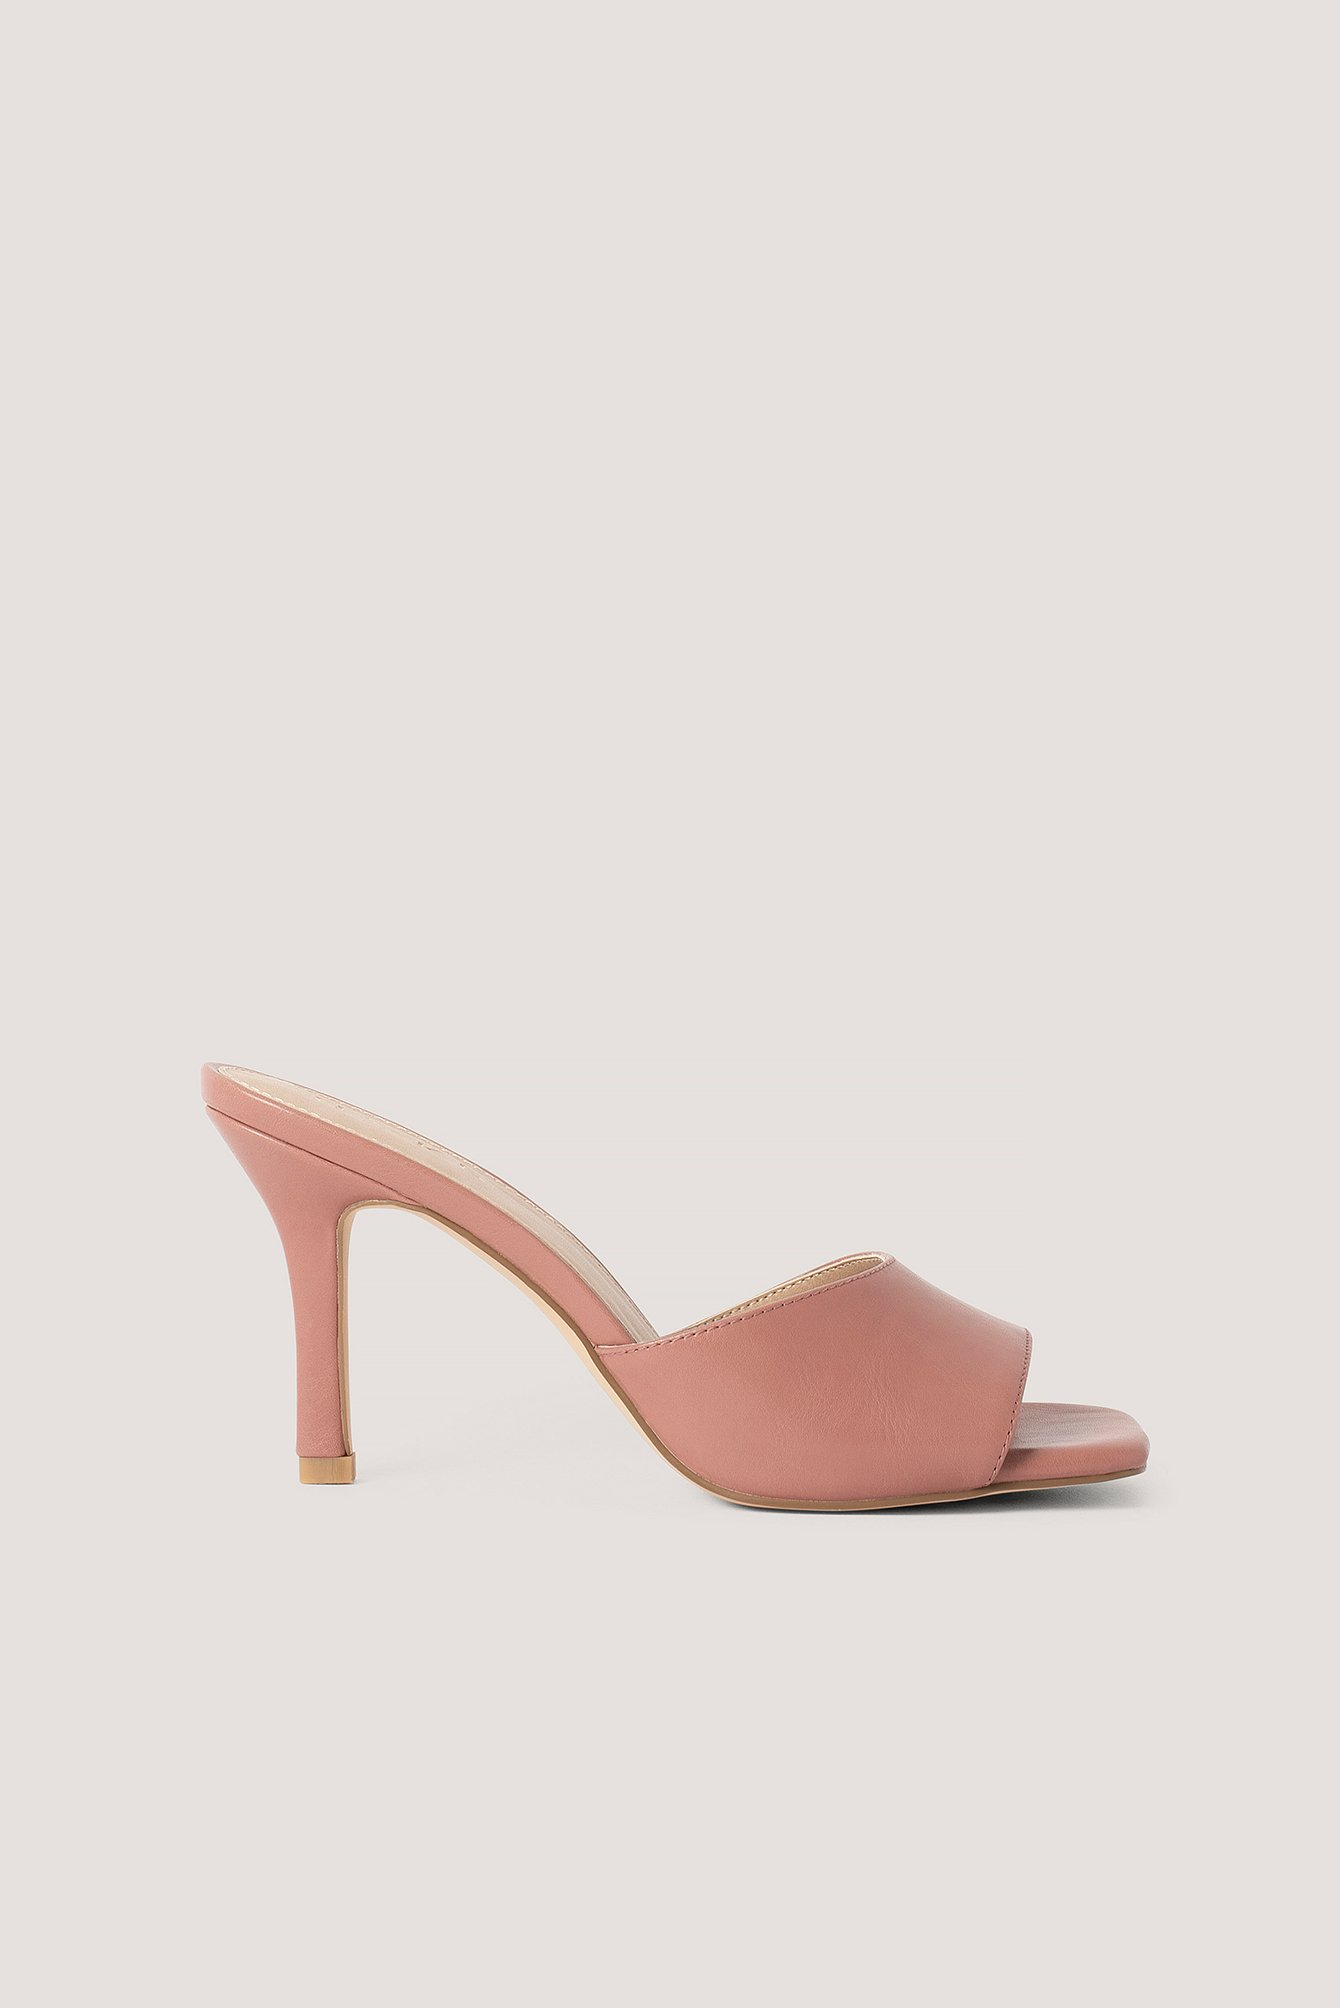 Dusty Pink Squared Toe Stiletto Mules